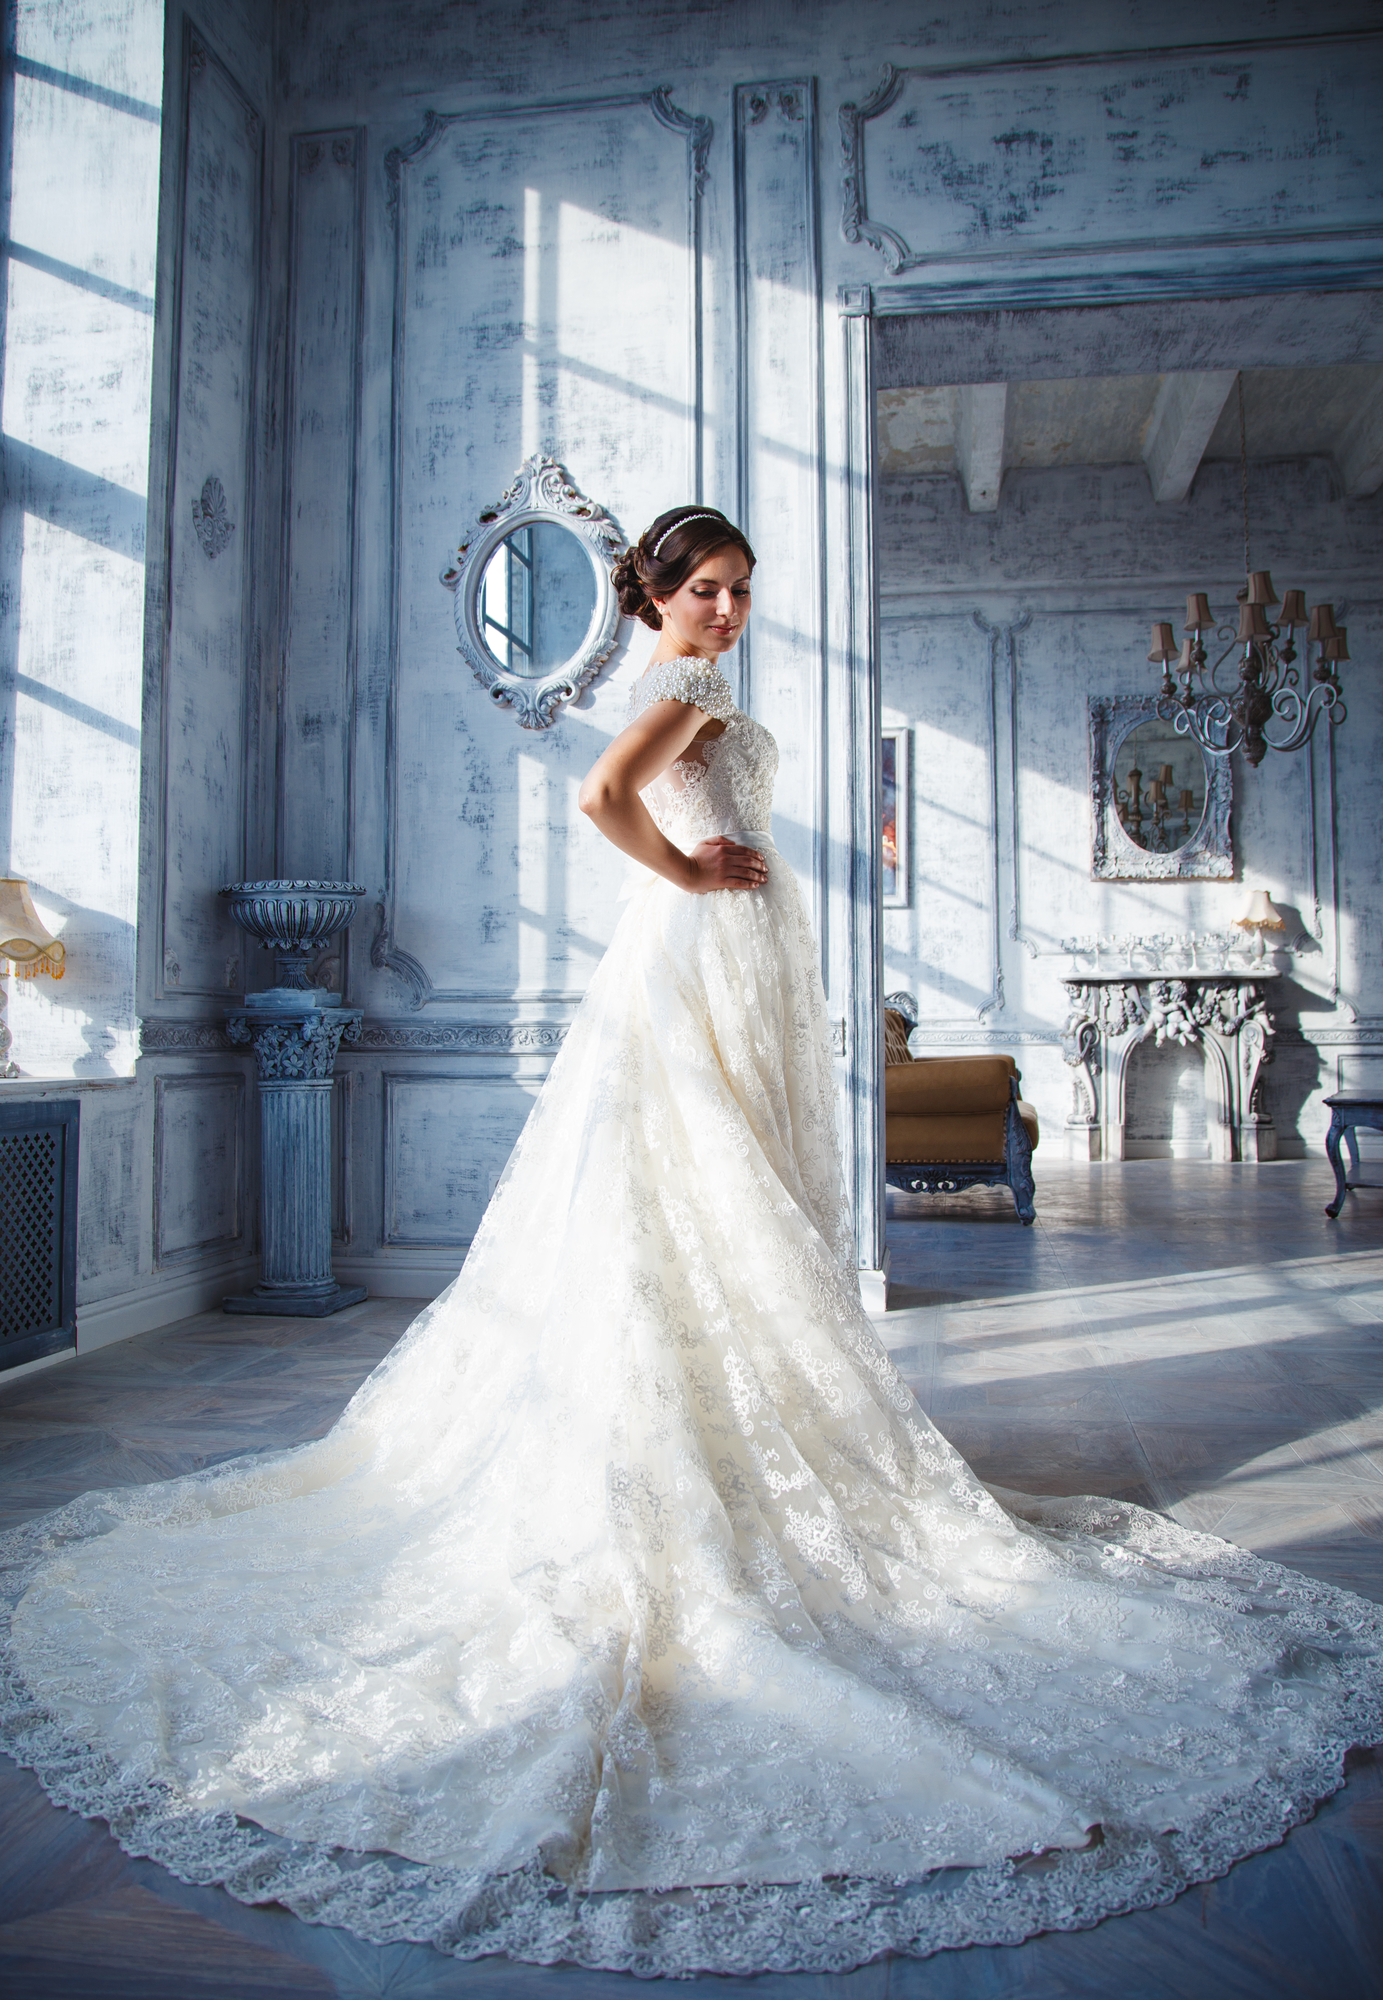 3 Wedding Dress Alteration Tips From the Experts - Chic Sport Tailor ...